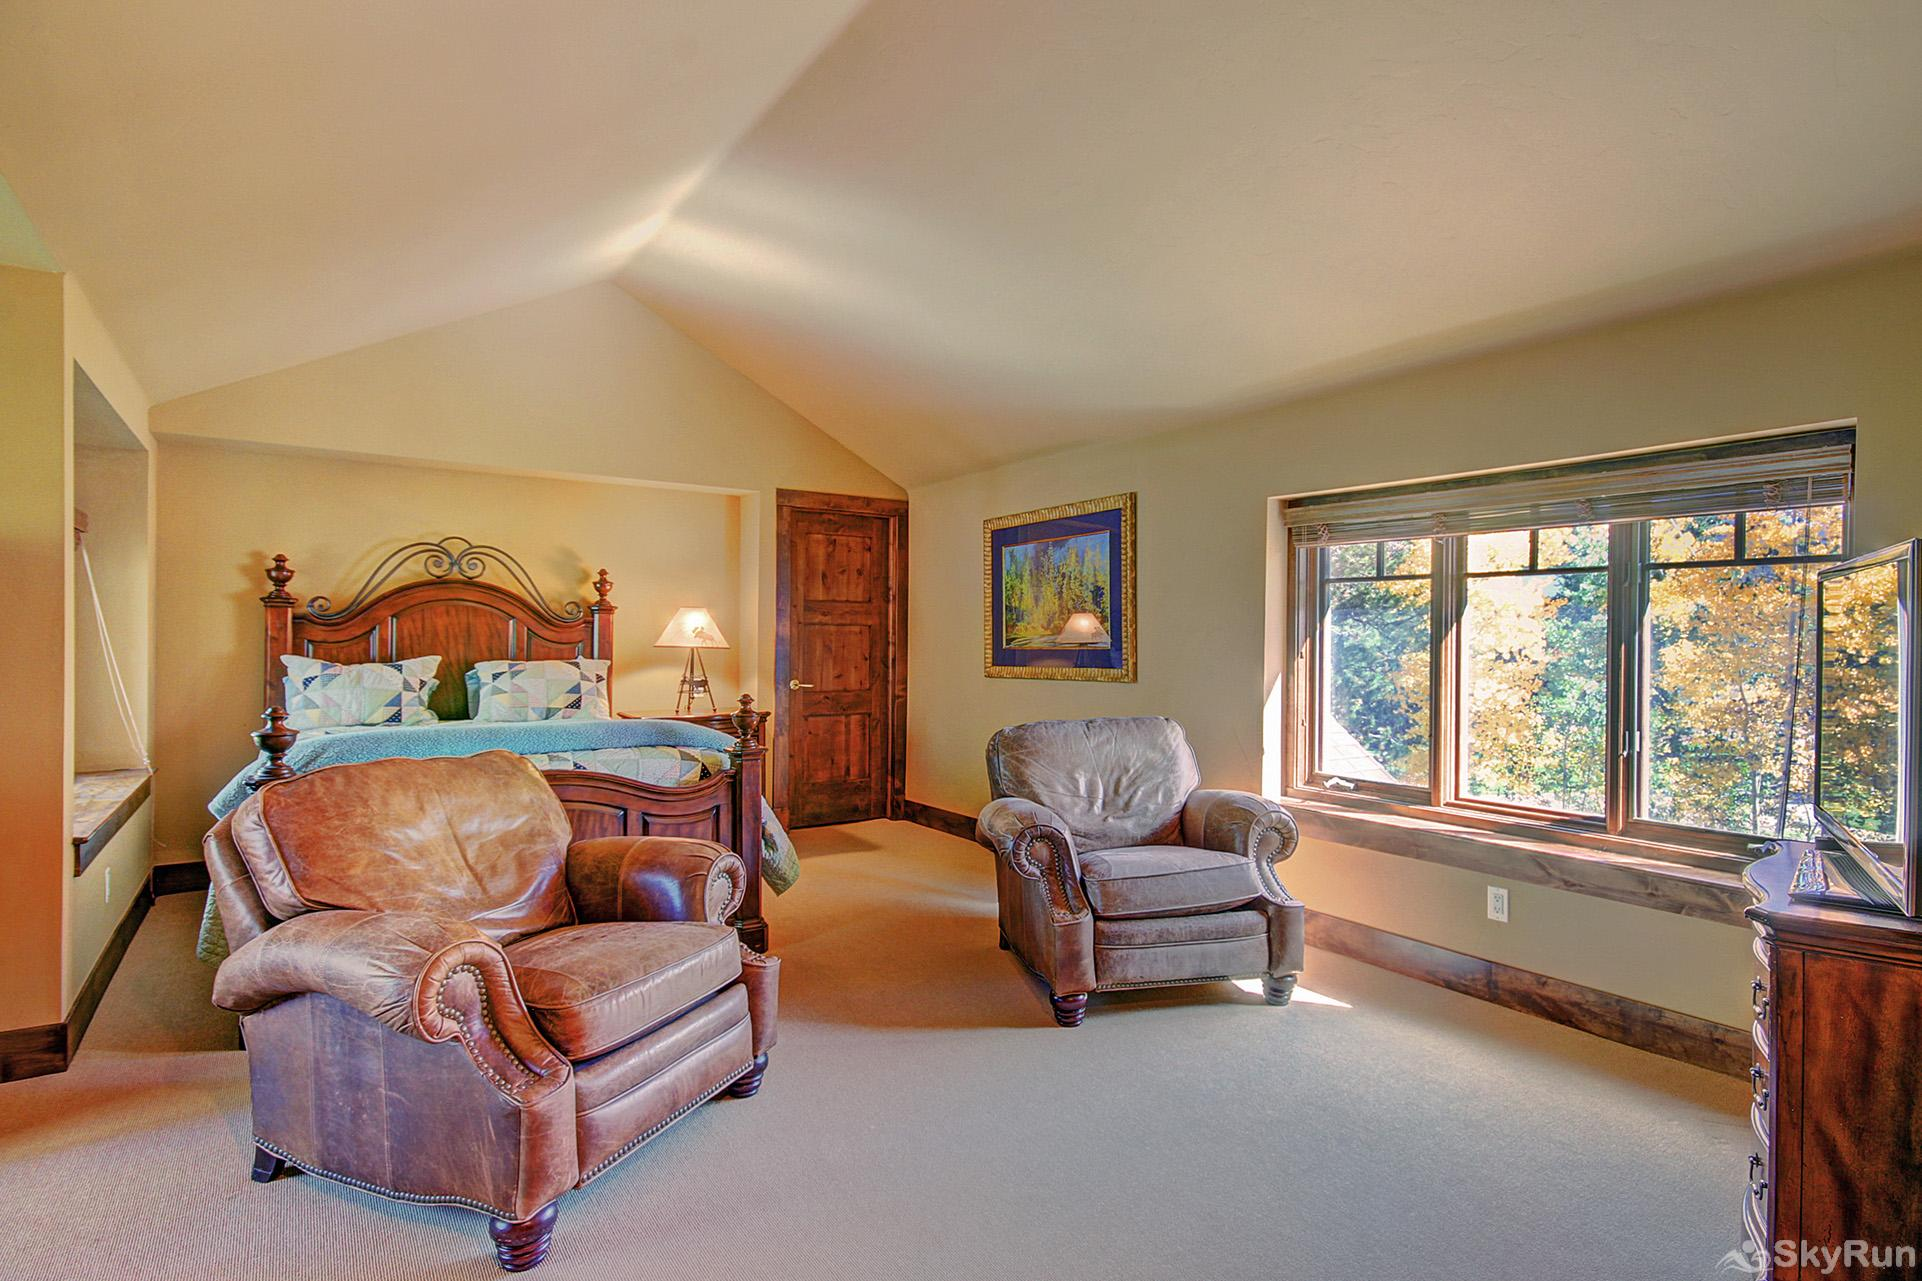 Marksberry Lodge Upper level queen bedroom with sitting area, crib